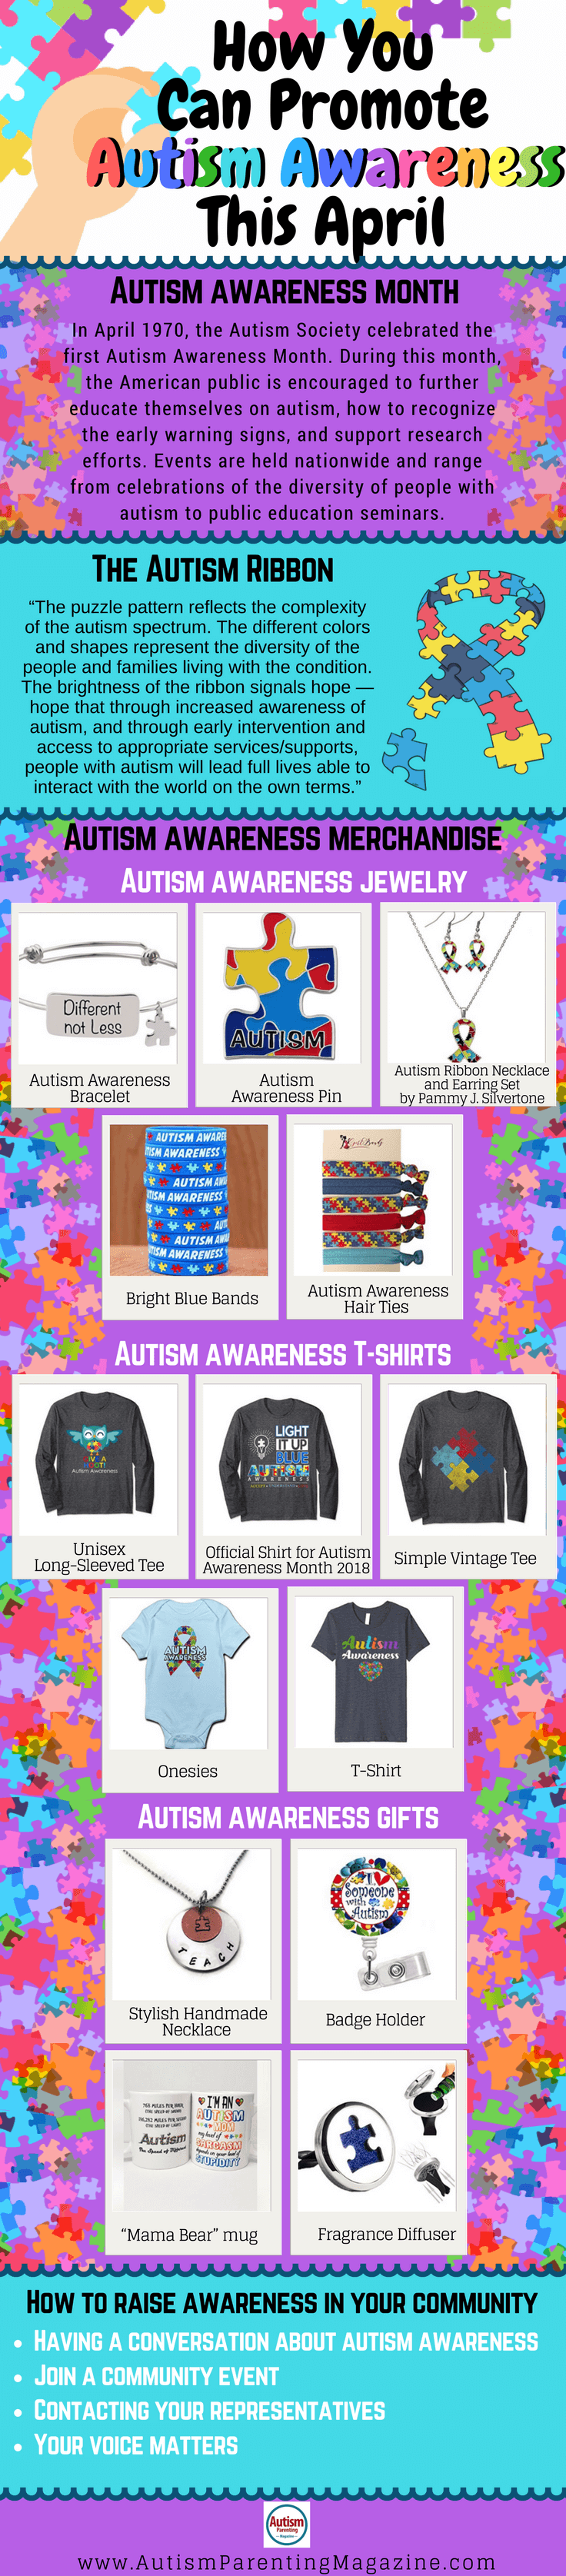 Download our Free Guide - How You Can Promote Autism Awareness This April https://www.autismparentingmagazine.com/promote-autism-awareness/